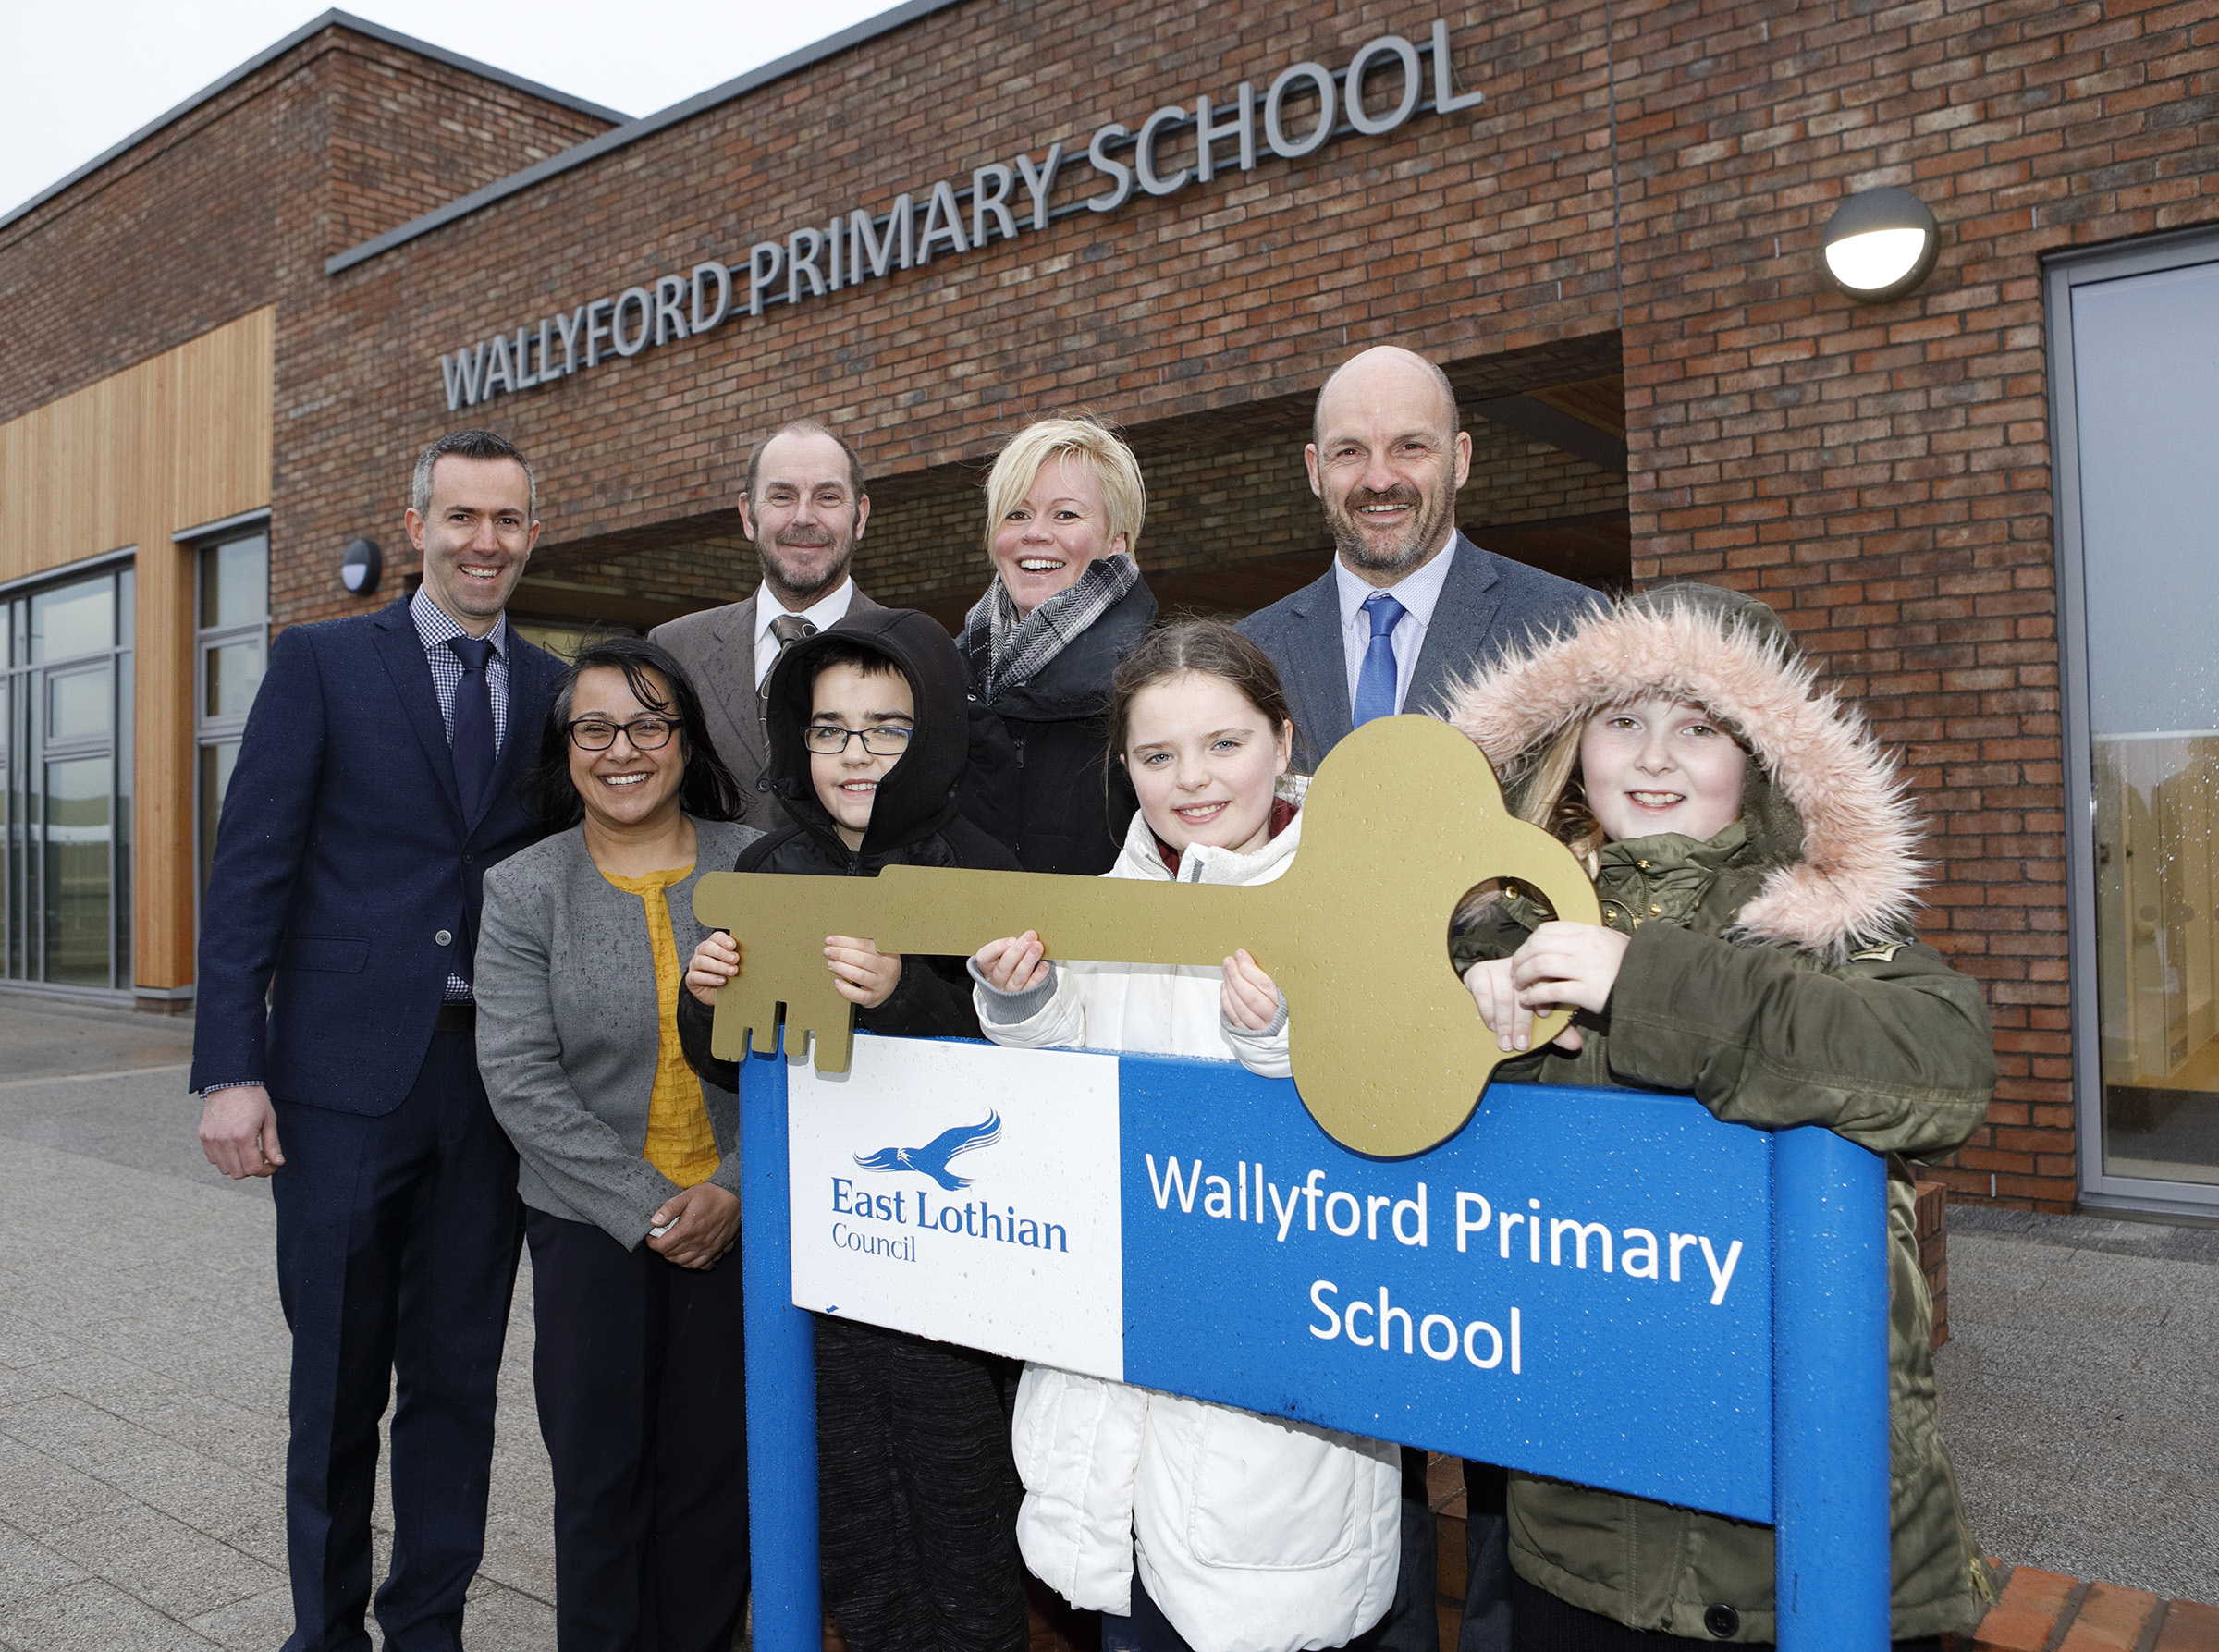 Pupils about to start life at new Wallyford Primary School